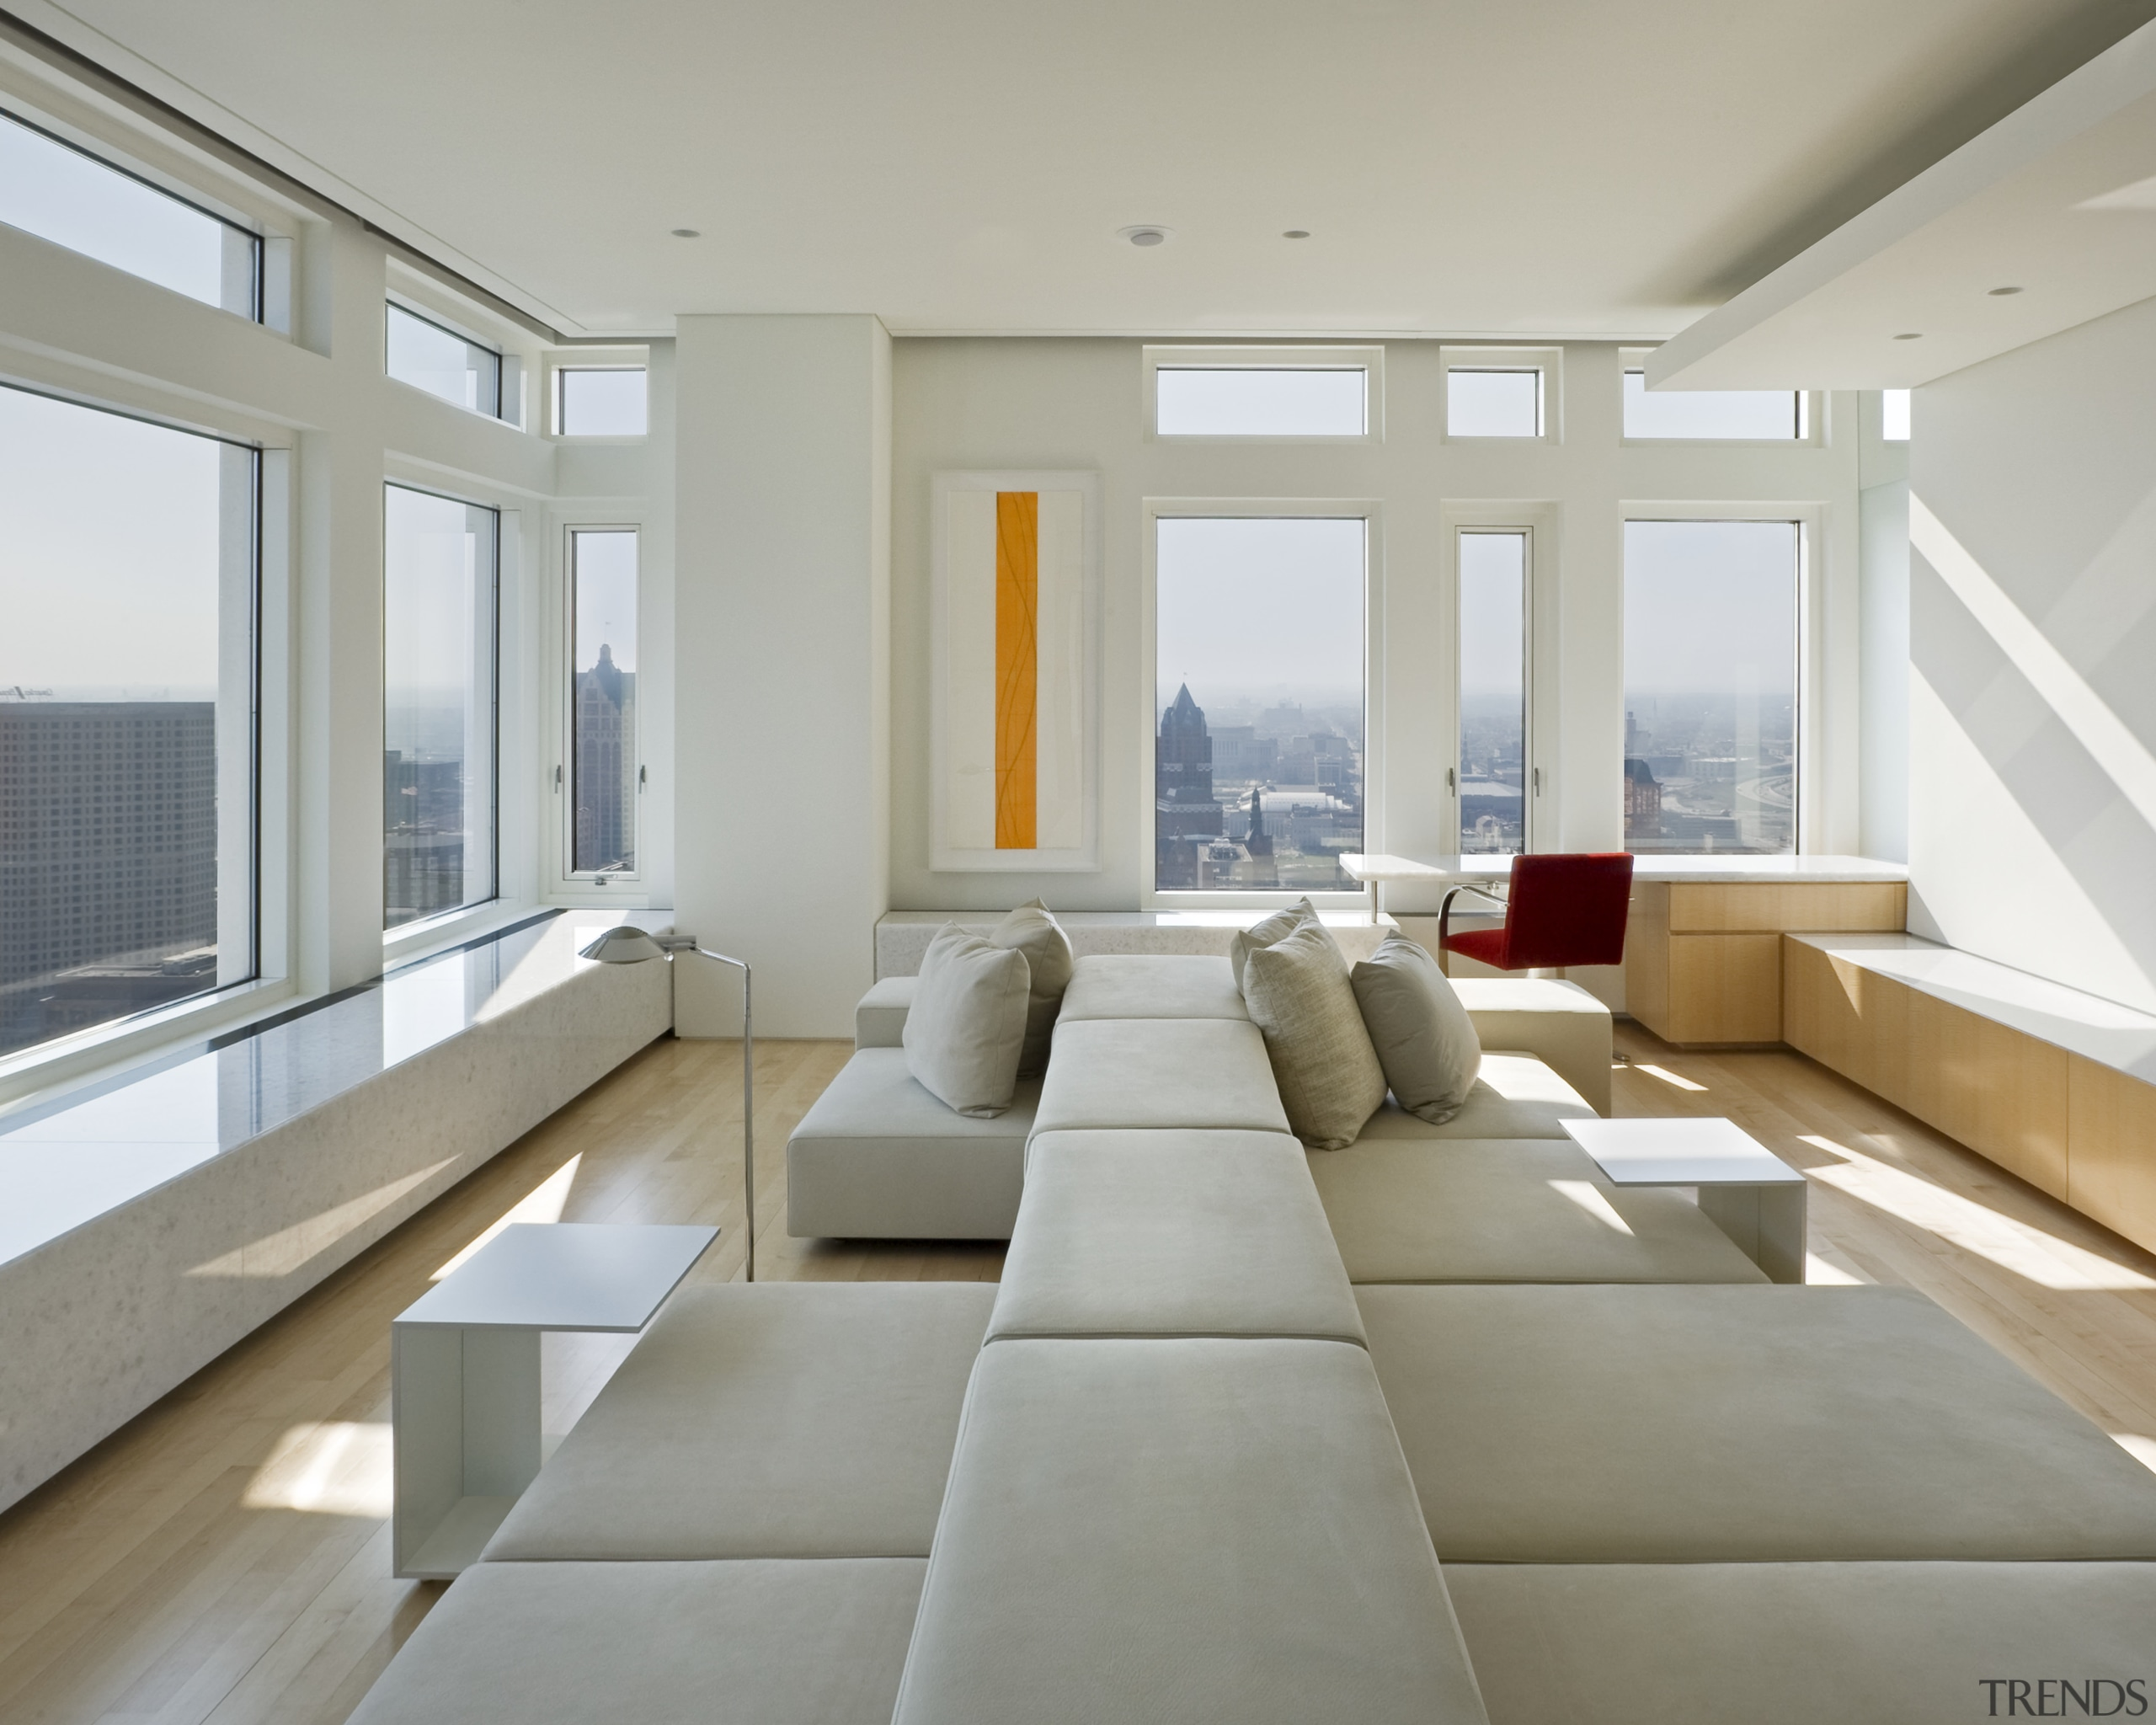 View of penthouse with white walls and a architecture, ceiling, daylighting, floor, house, interior design, living room, real estate, window, gray